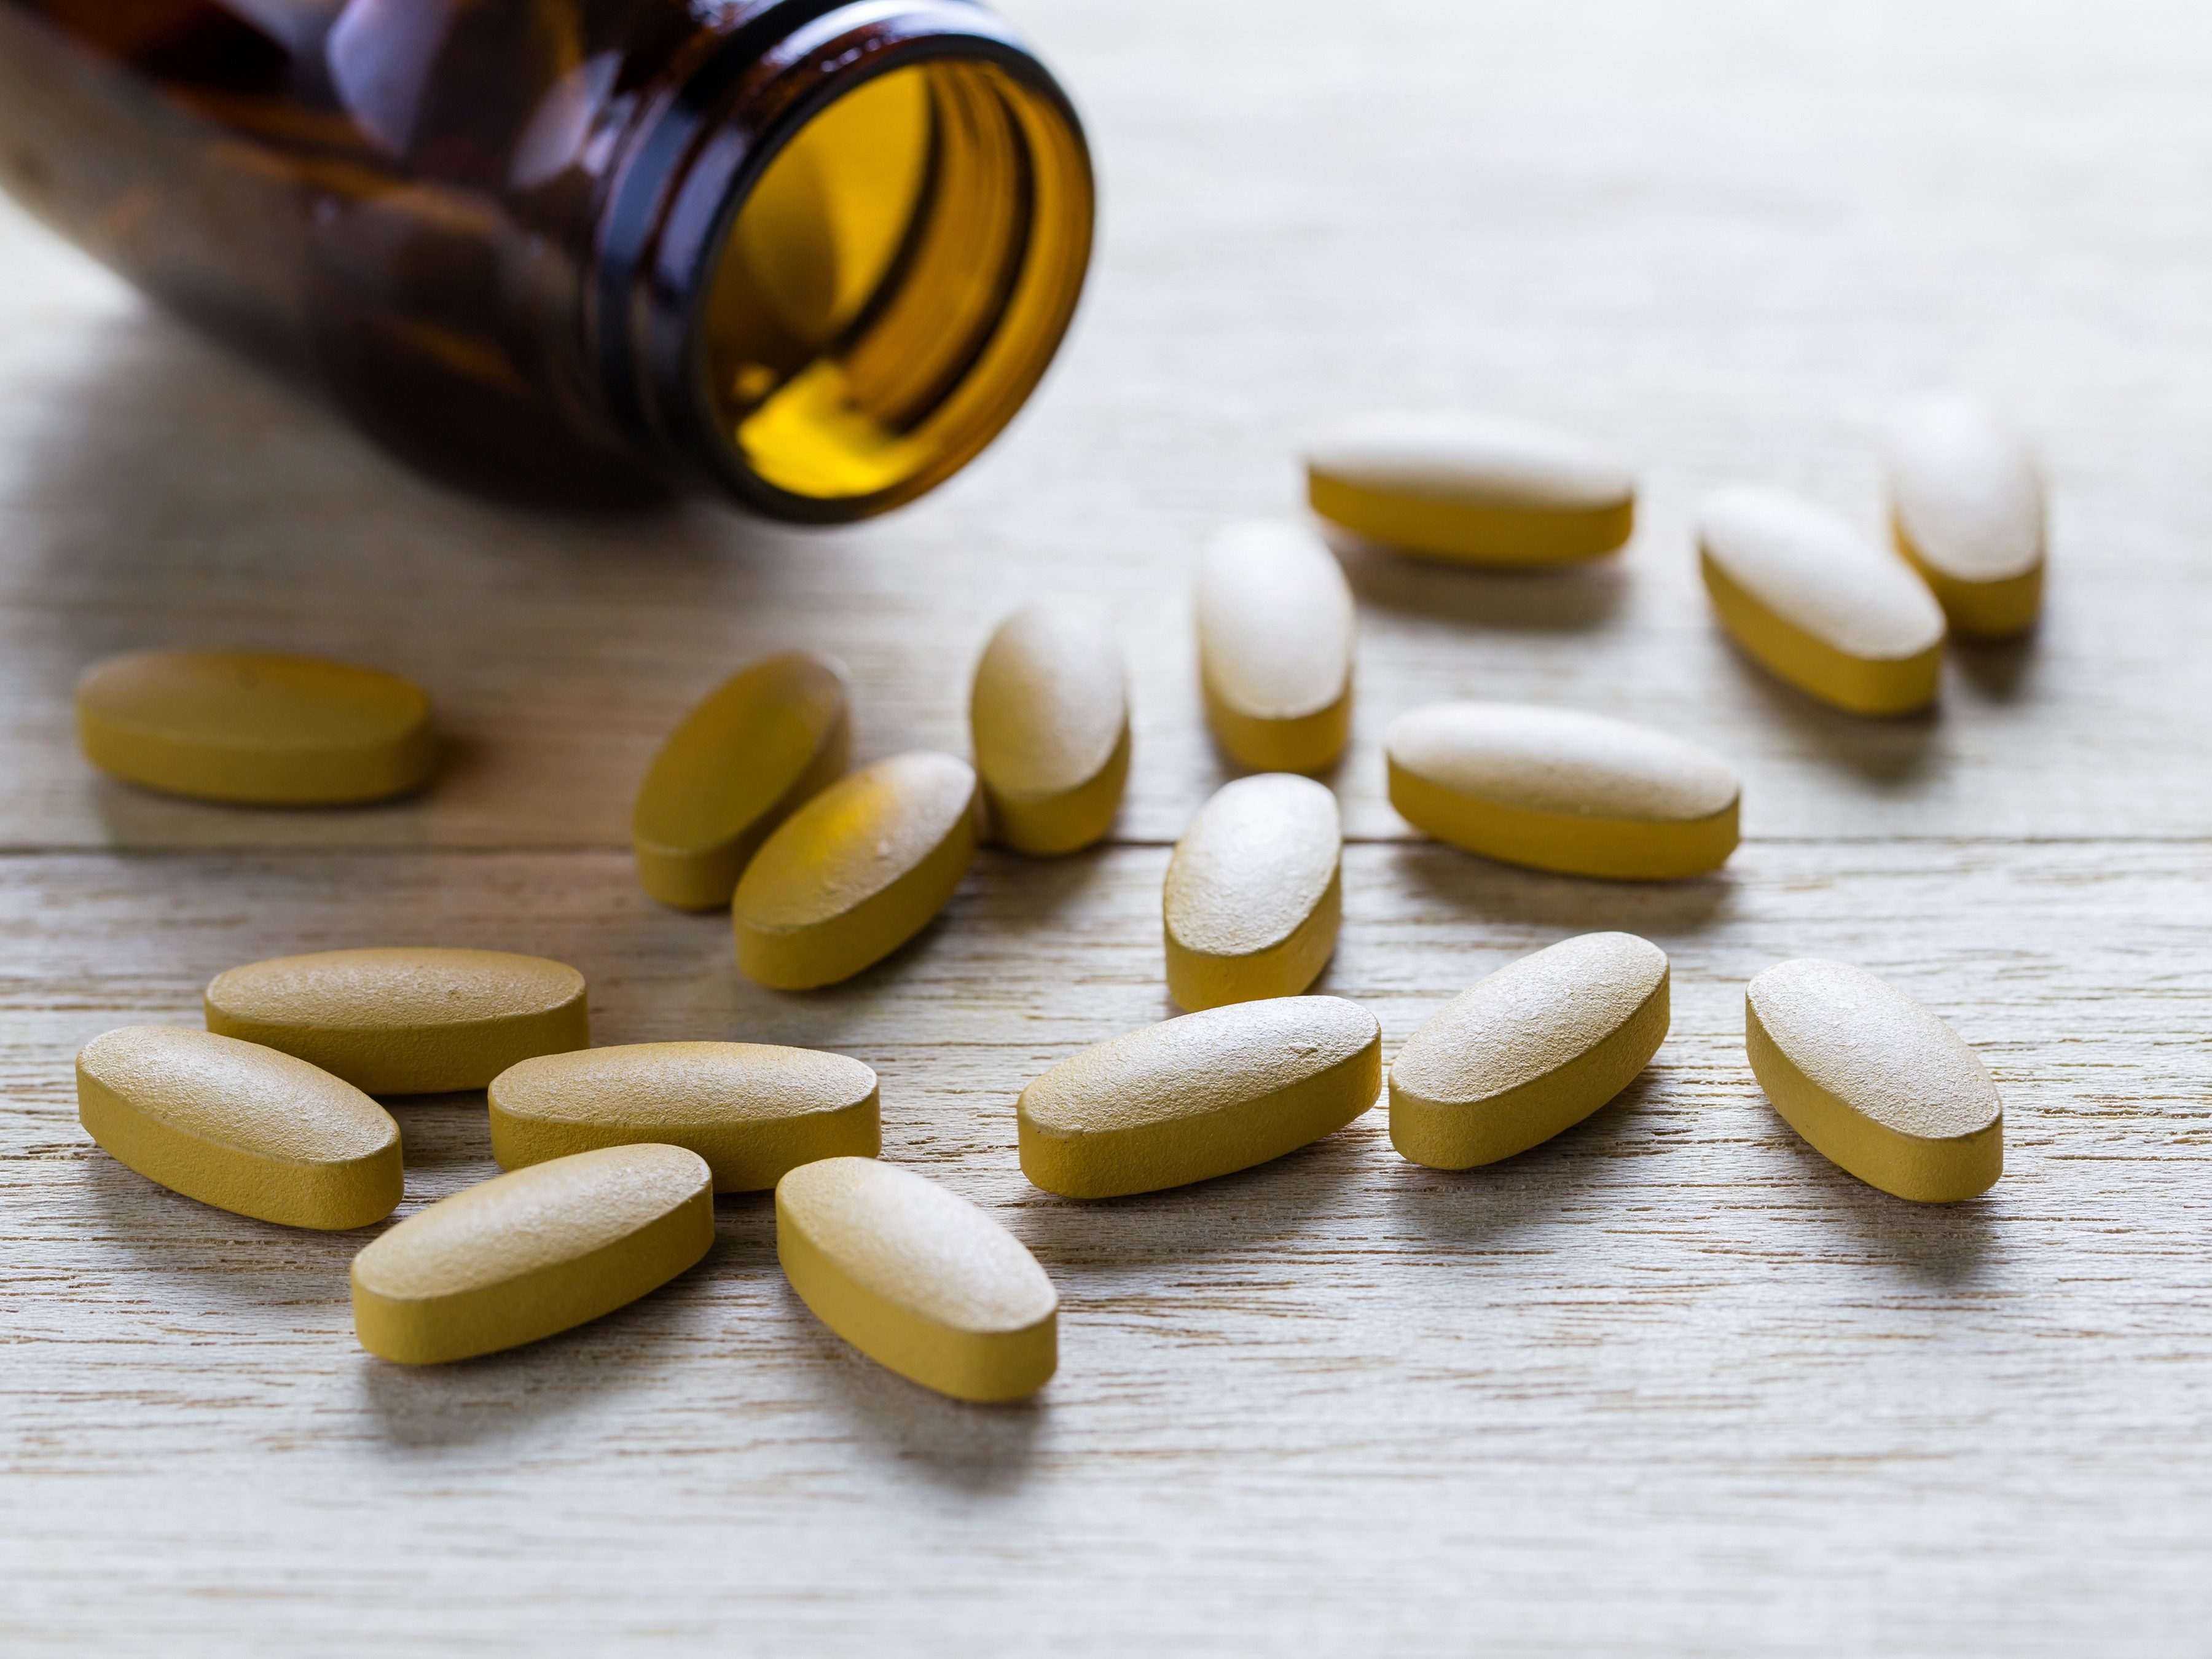 8. Try anti-inflammatory supplements